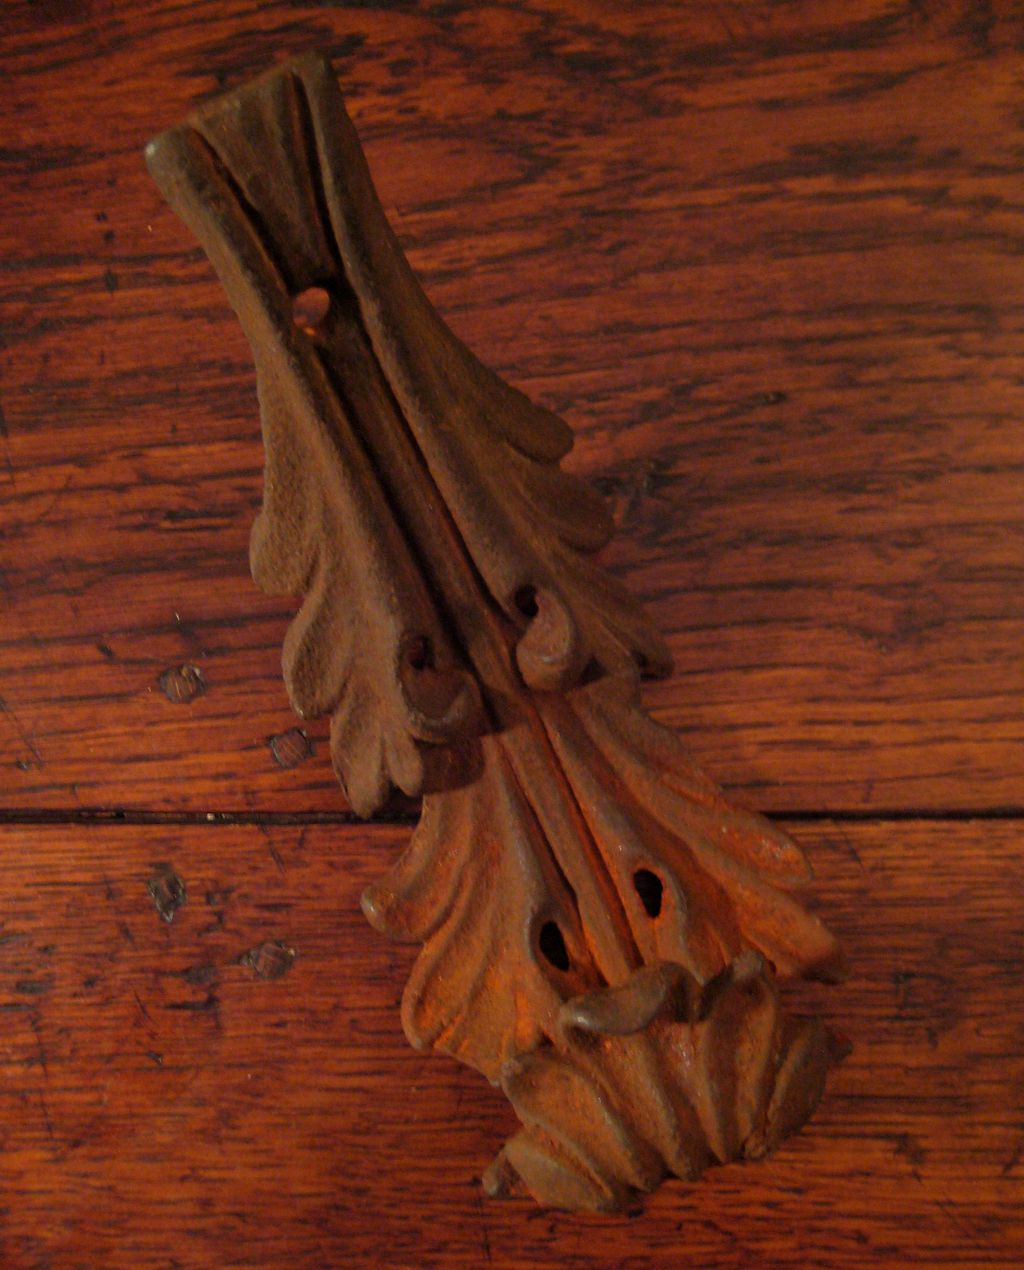 19th Century Iron Acanthus Leaf Plant Hanger Hook